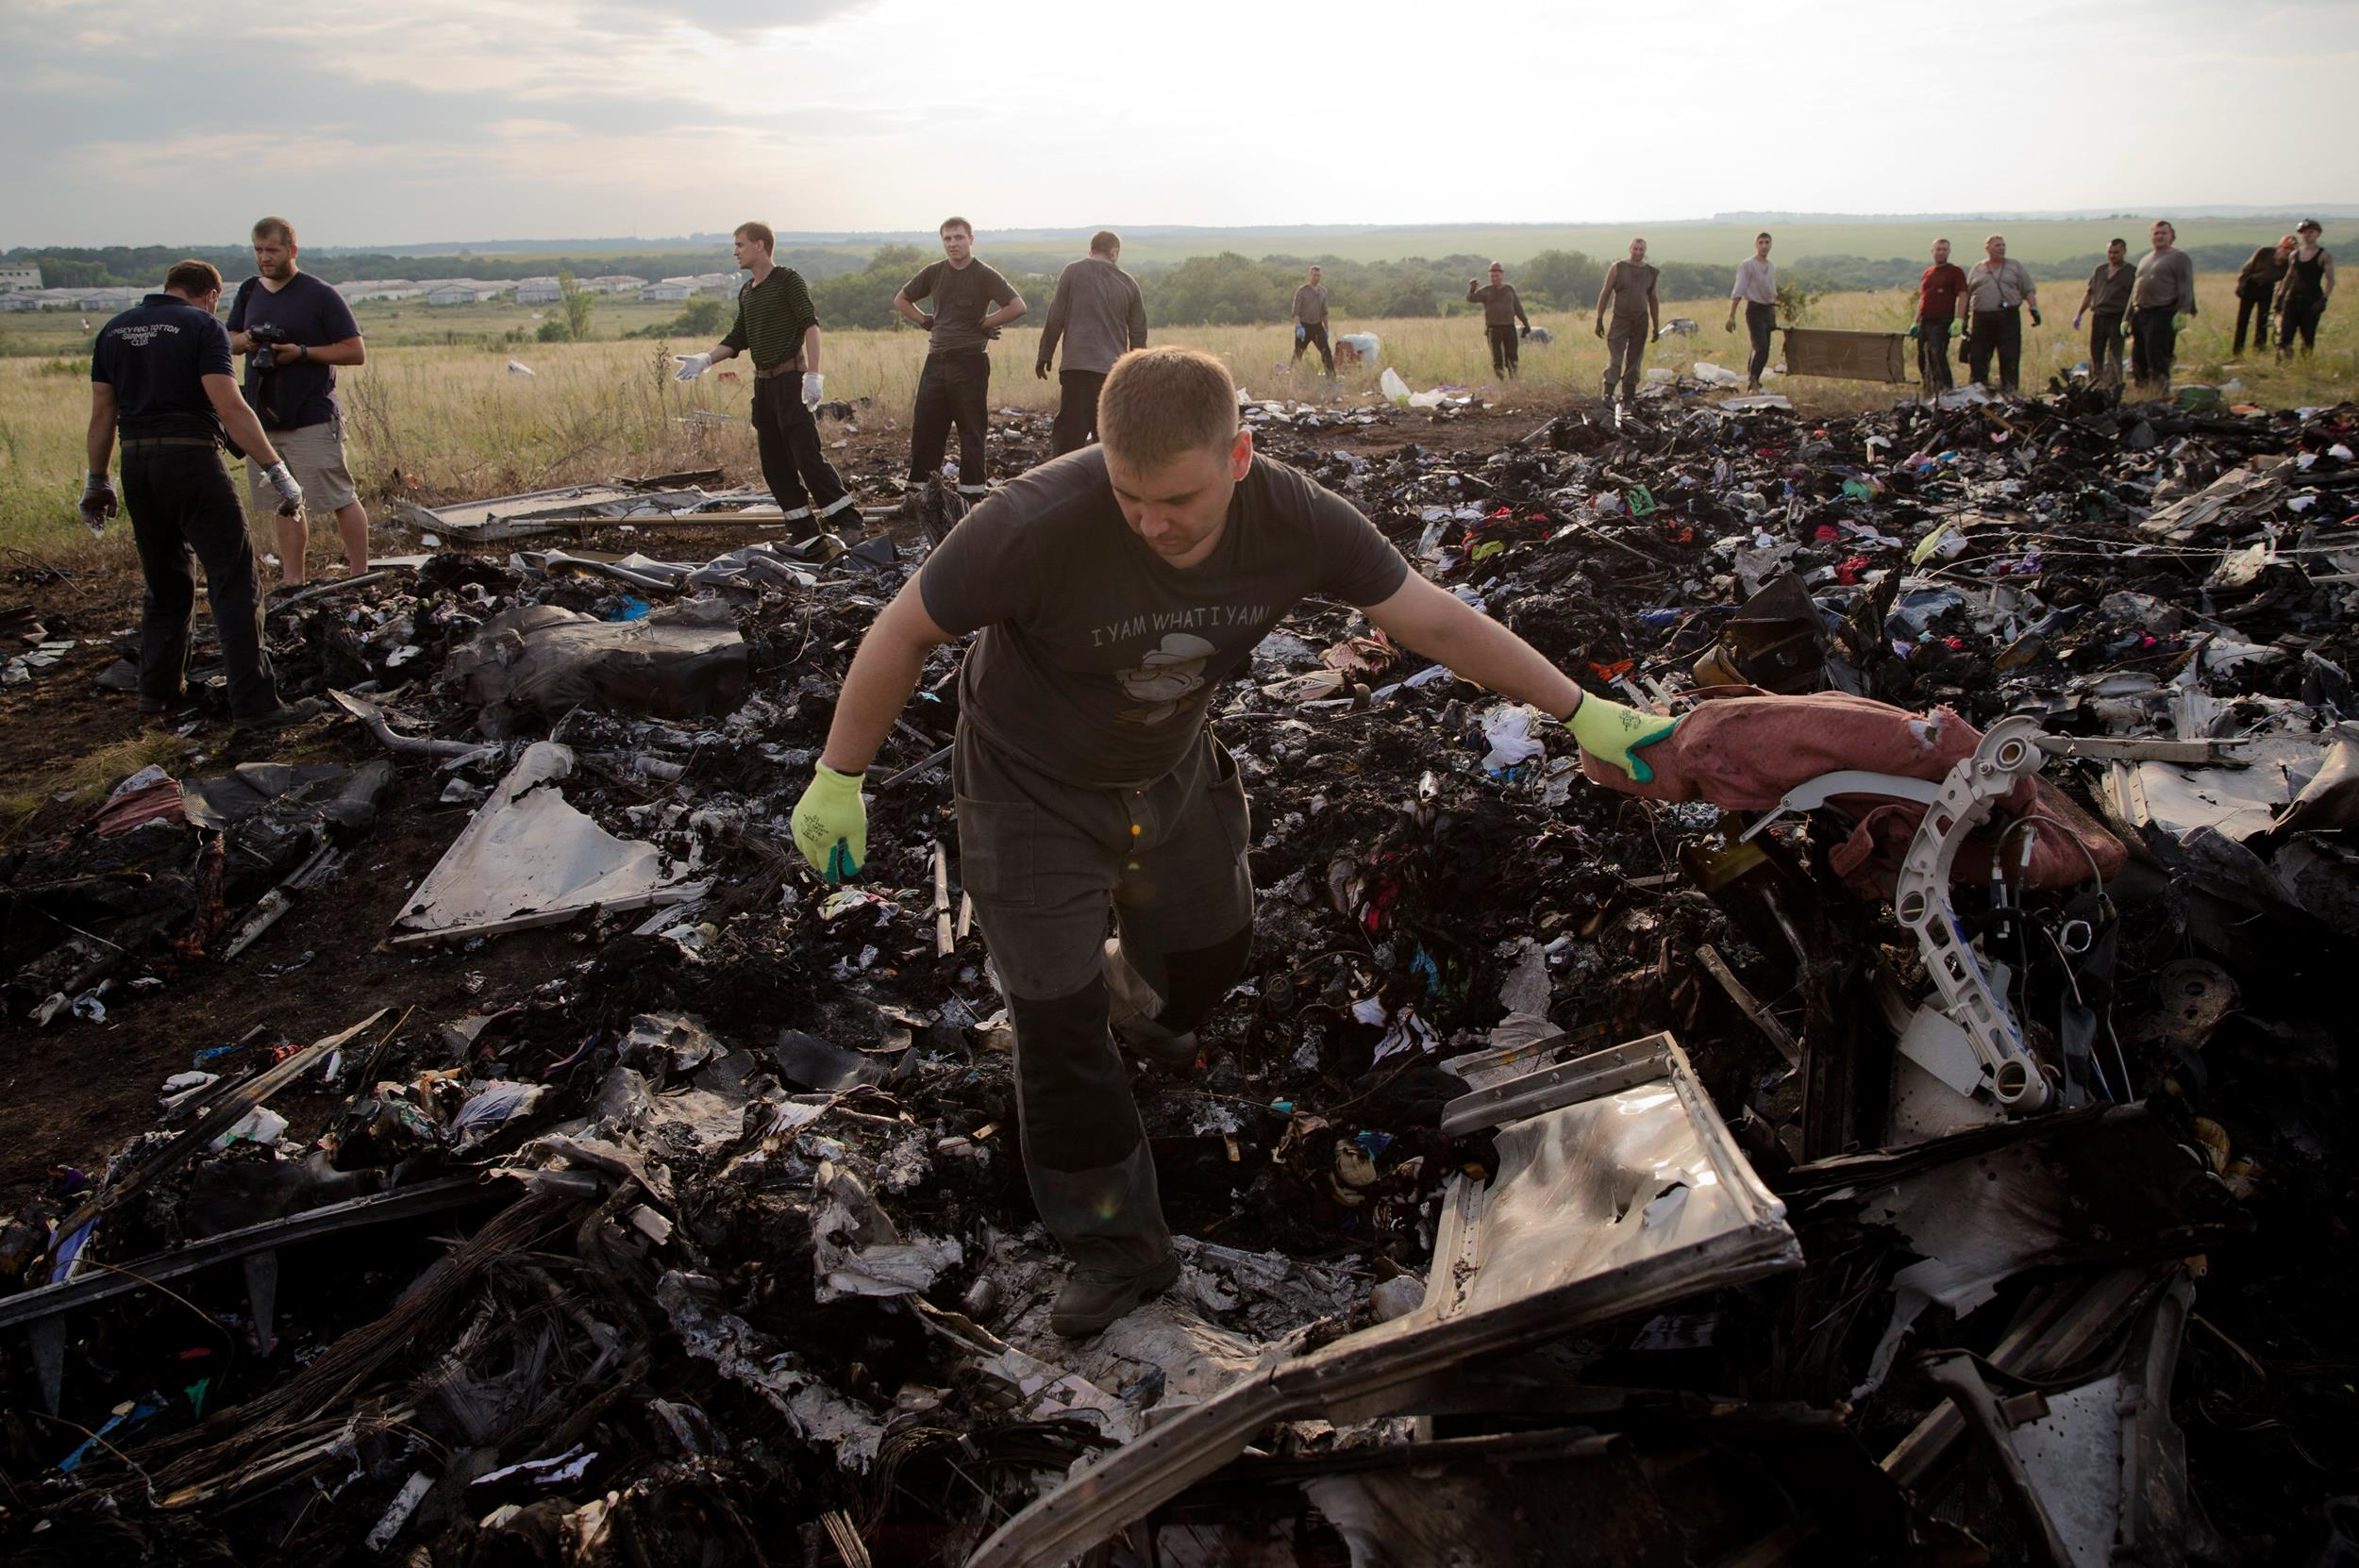 Image: A man looks for the remains of victims in the debris at the crash site